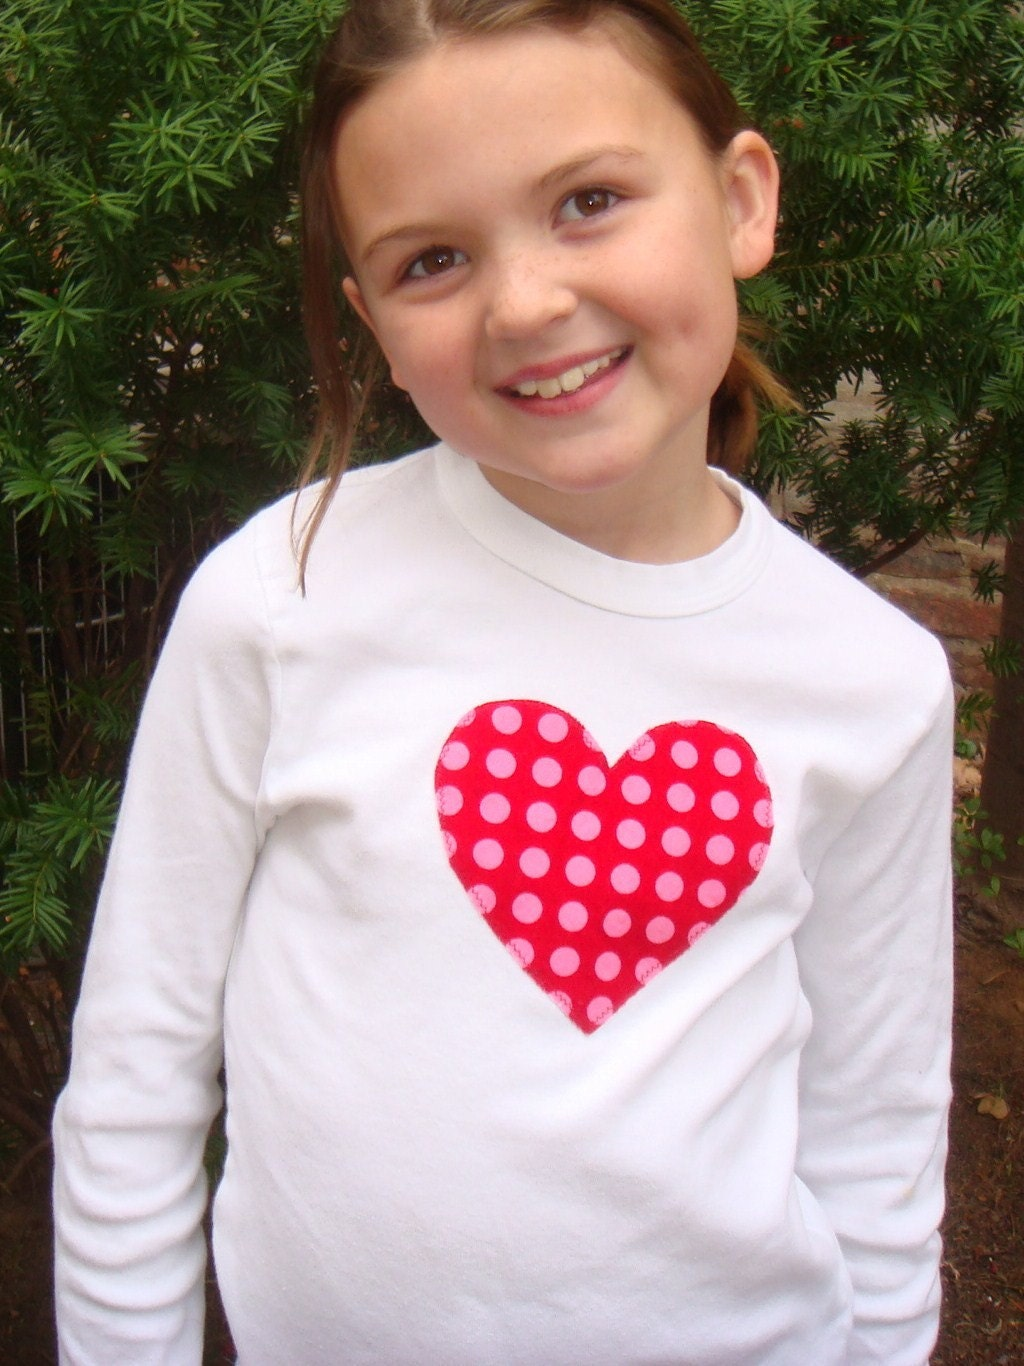 Heart Applique T-Shirt for Girls